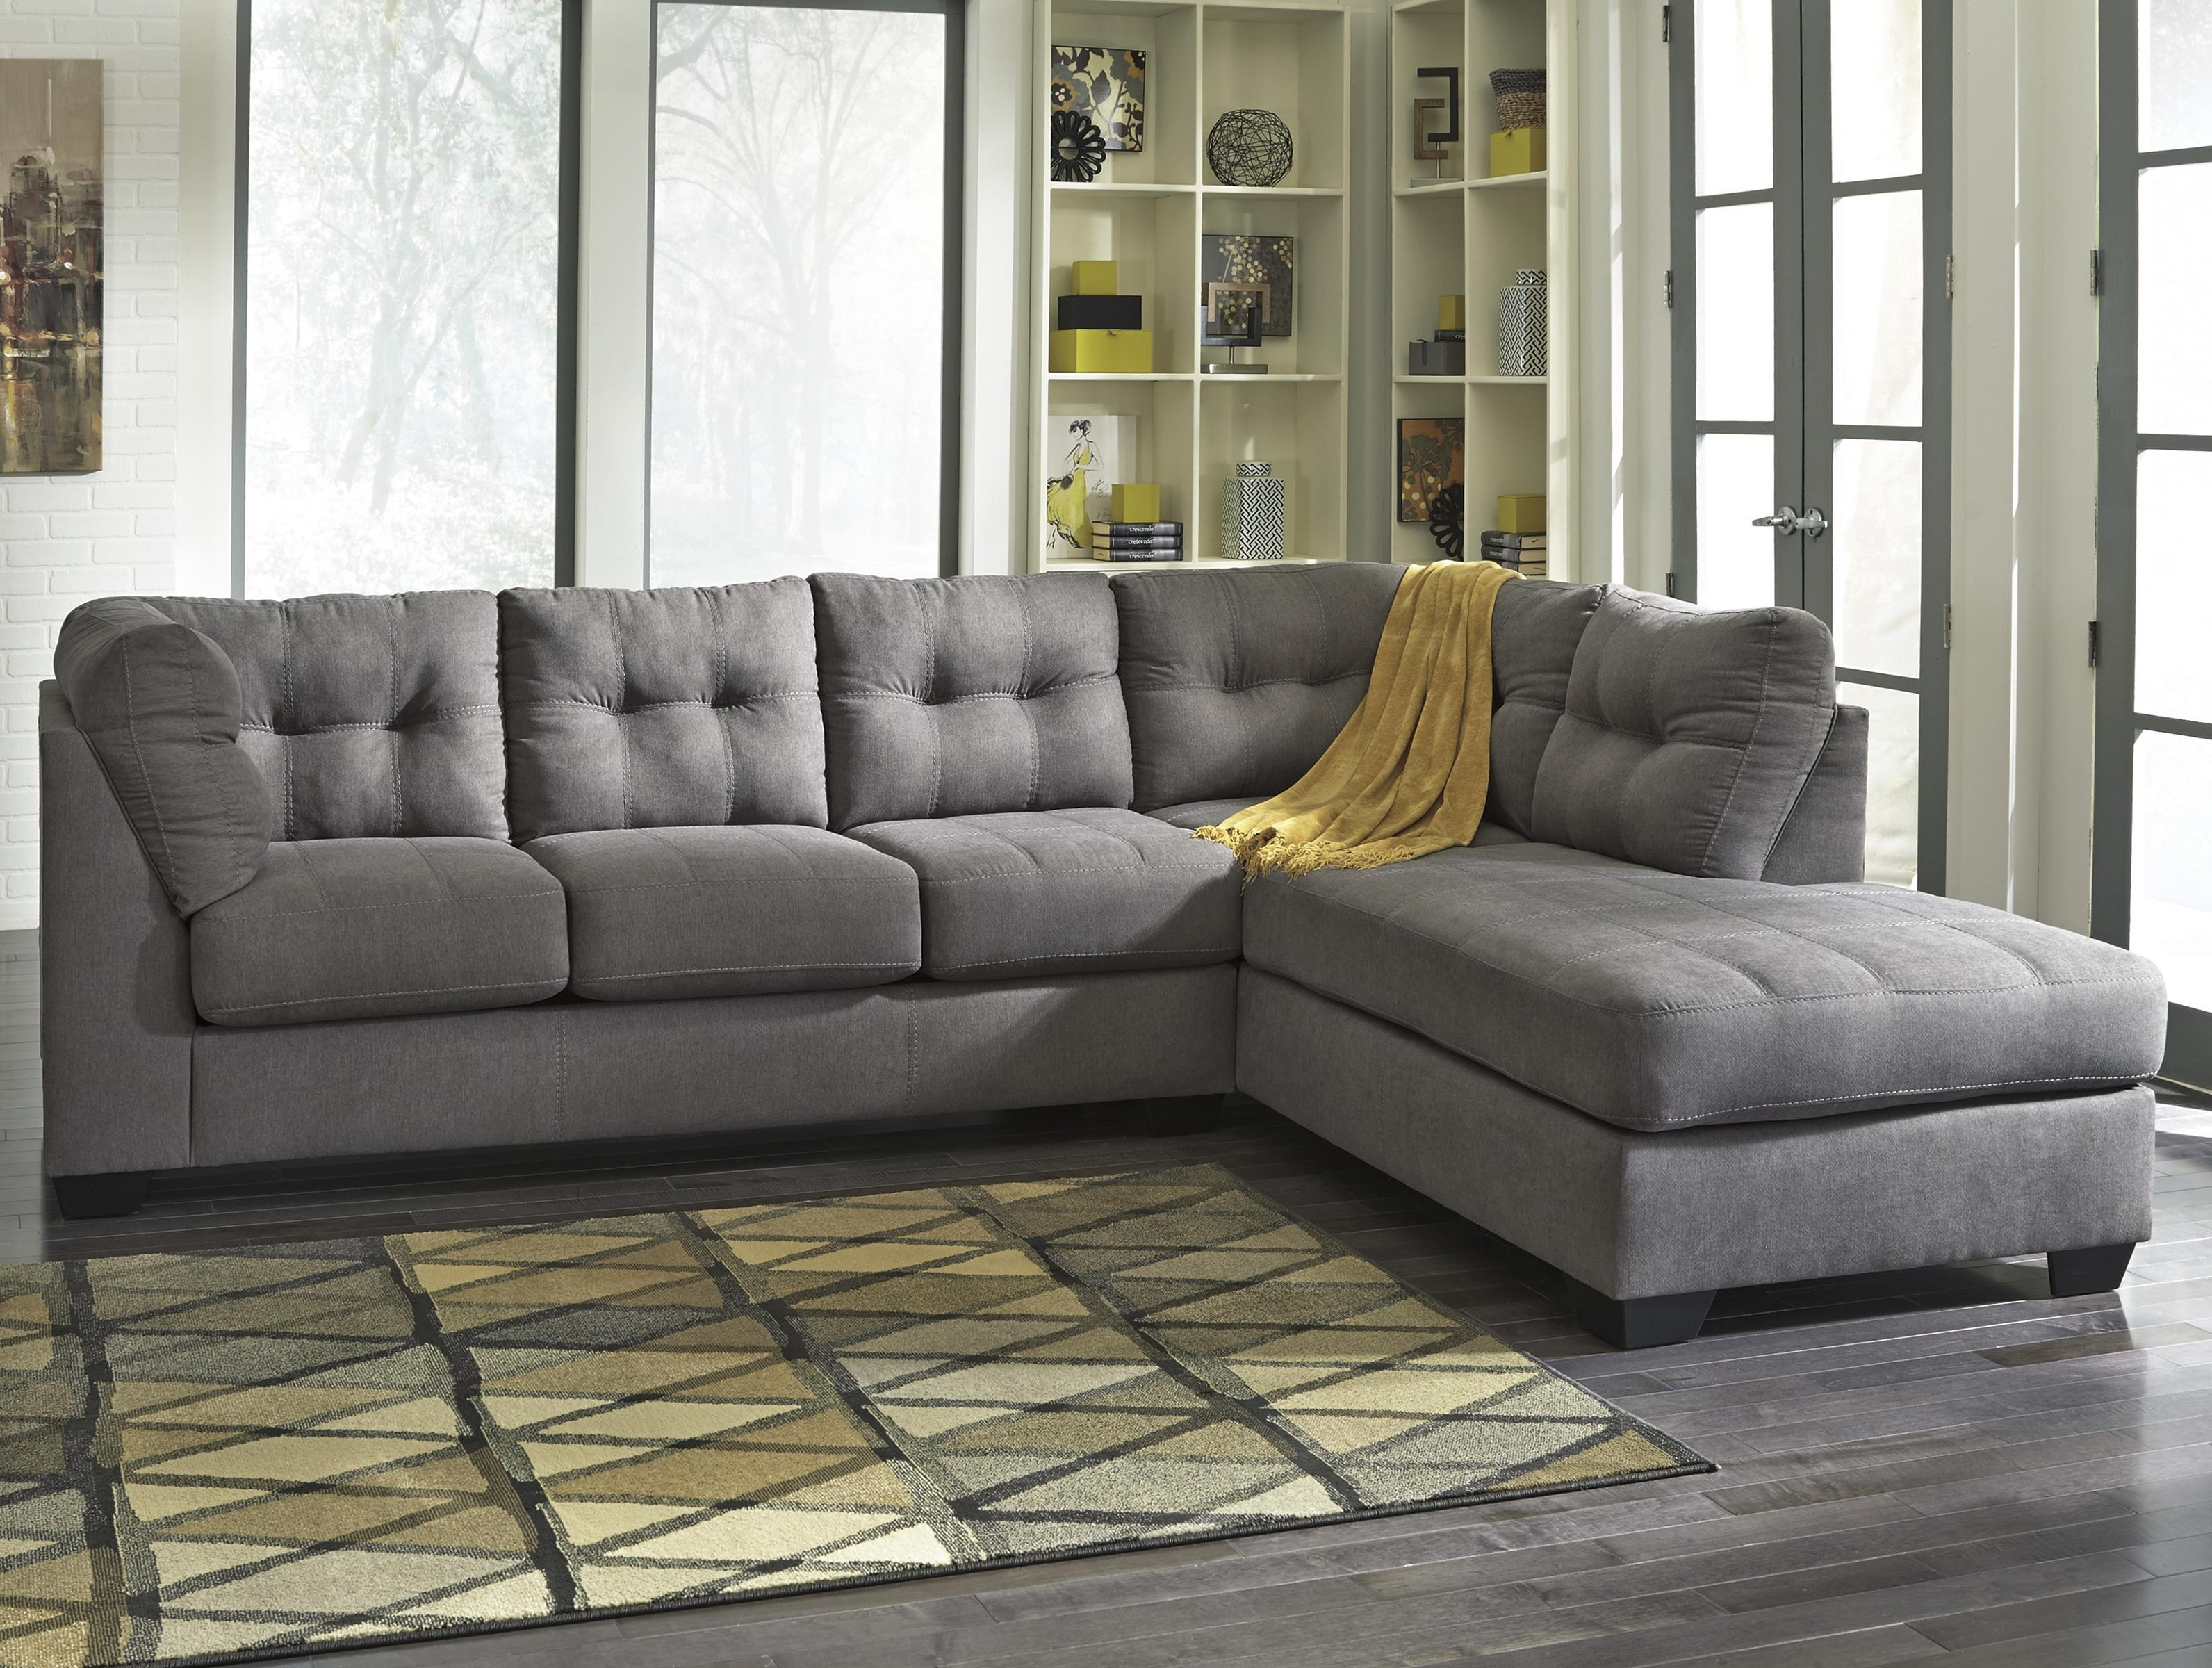 Well Known Choosing 2 Piece Sectional Sofa – Elites Home Decor Intended For Sectional Sofas That Can Be Rearranged (View 14 of 20)